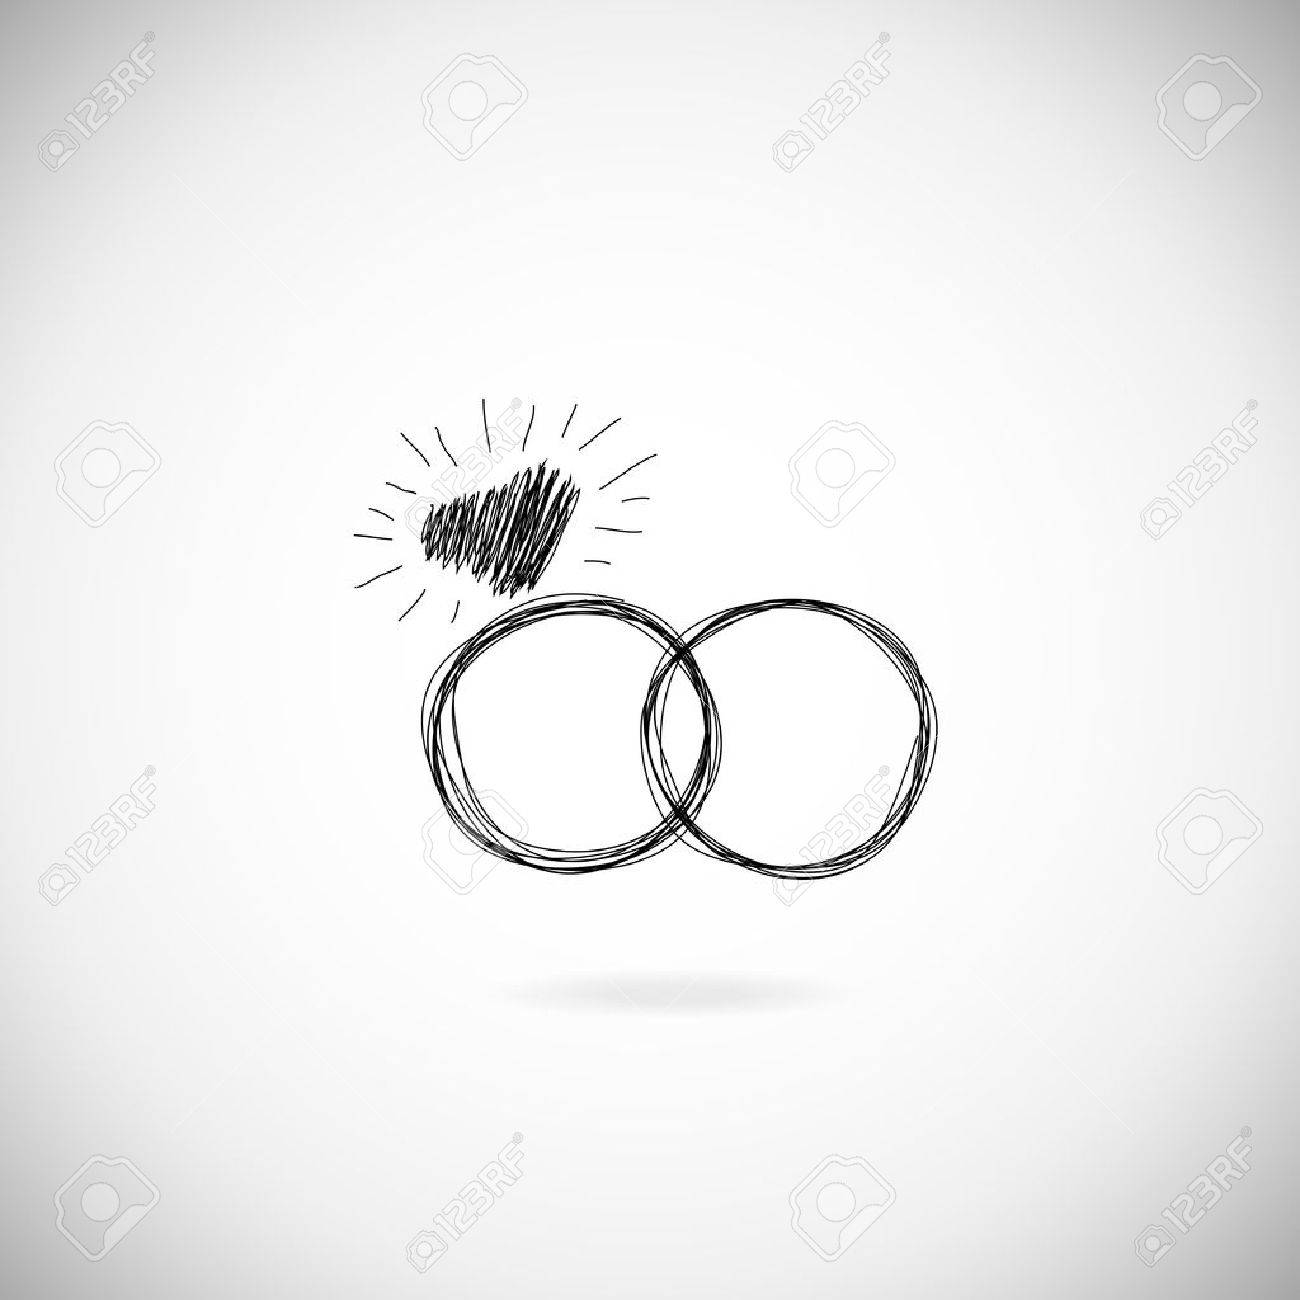 Wedding Silhouette Rings Icon Invitation Jewelry Hand Drawn Illustration Stock Vector: And Wedding White Rings Black Sulowett At Reisefeber.org